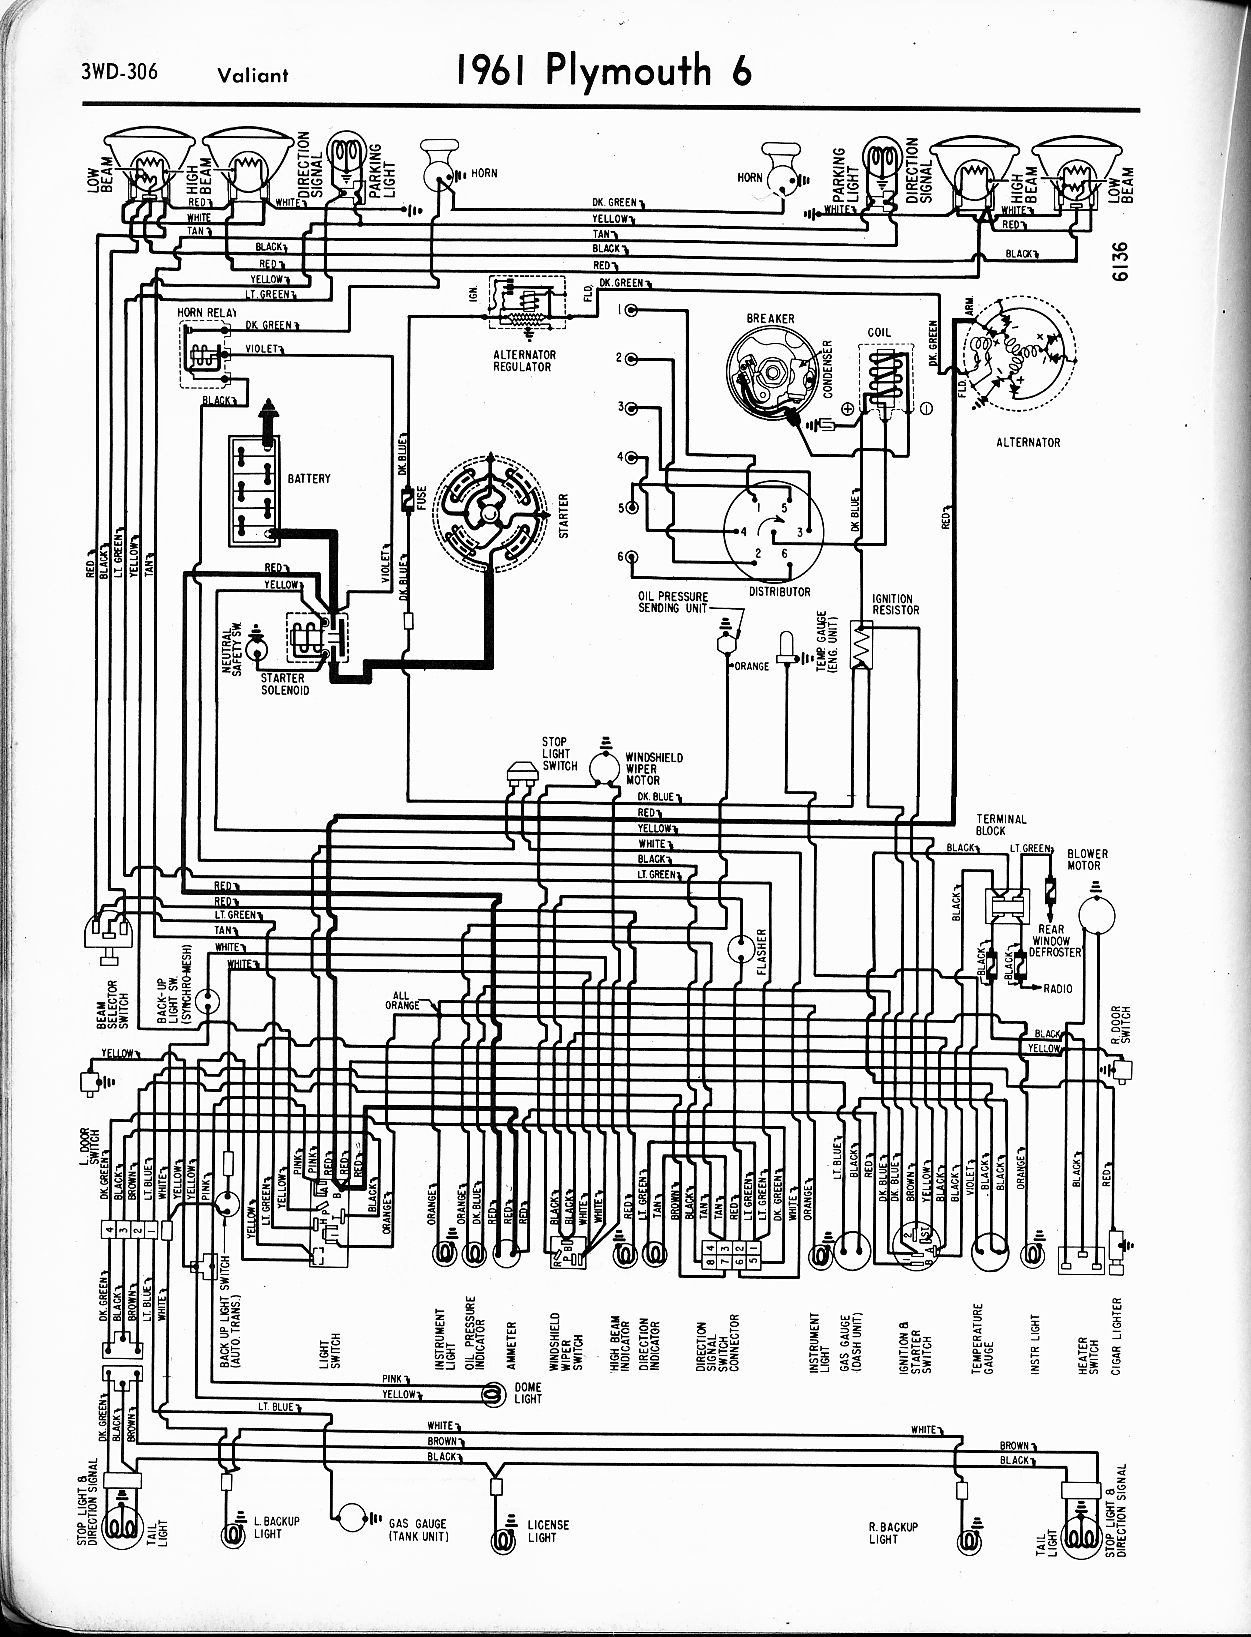 1953 Plymouth Cranbrook Wiring Diagram Telephone Wiring Diagram Wires Bege Wiring Diagram